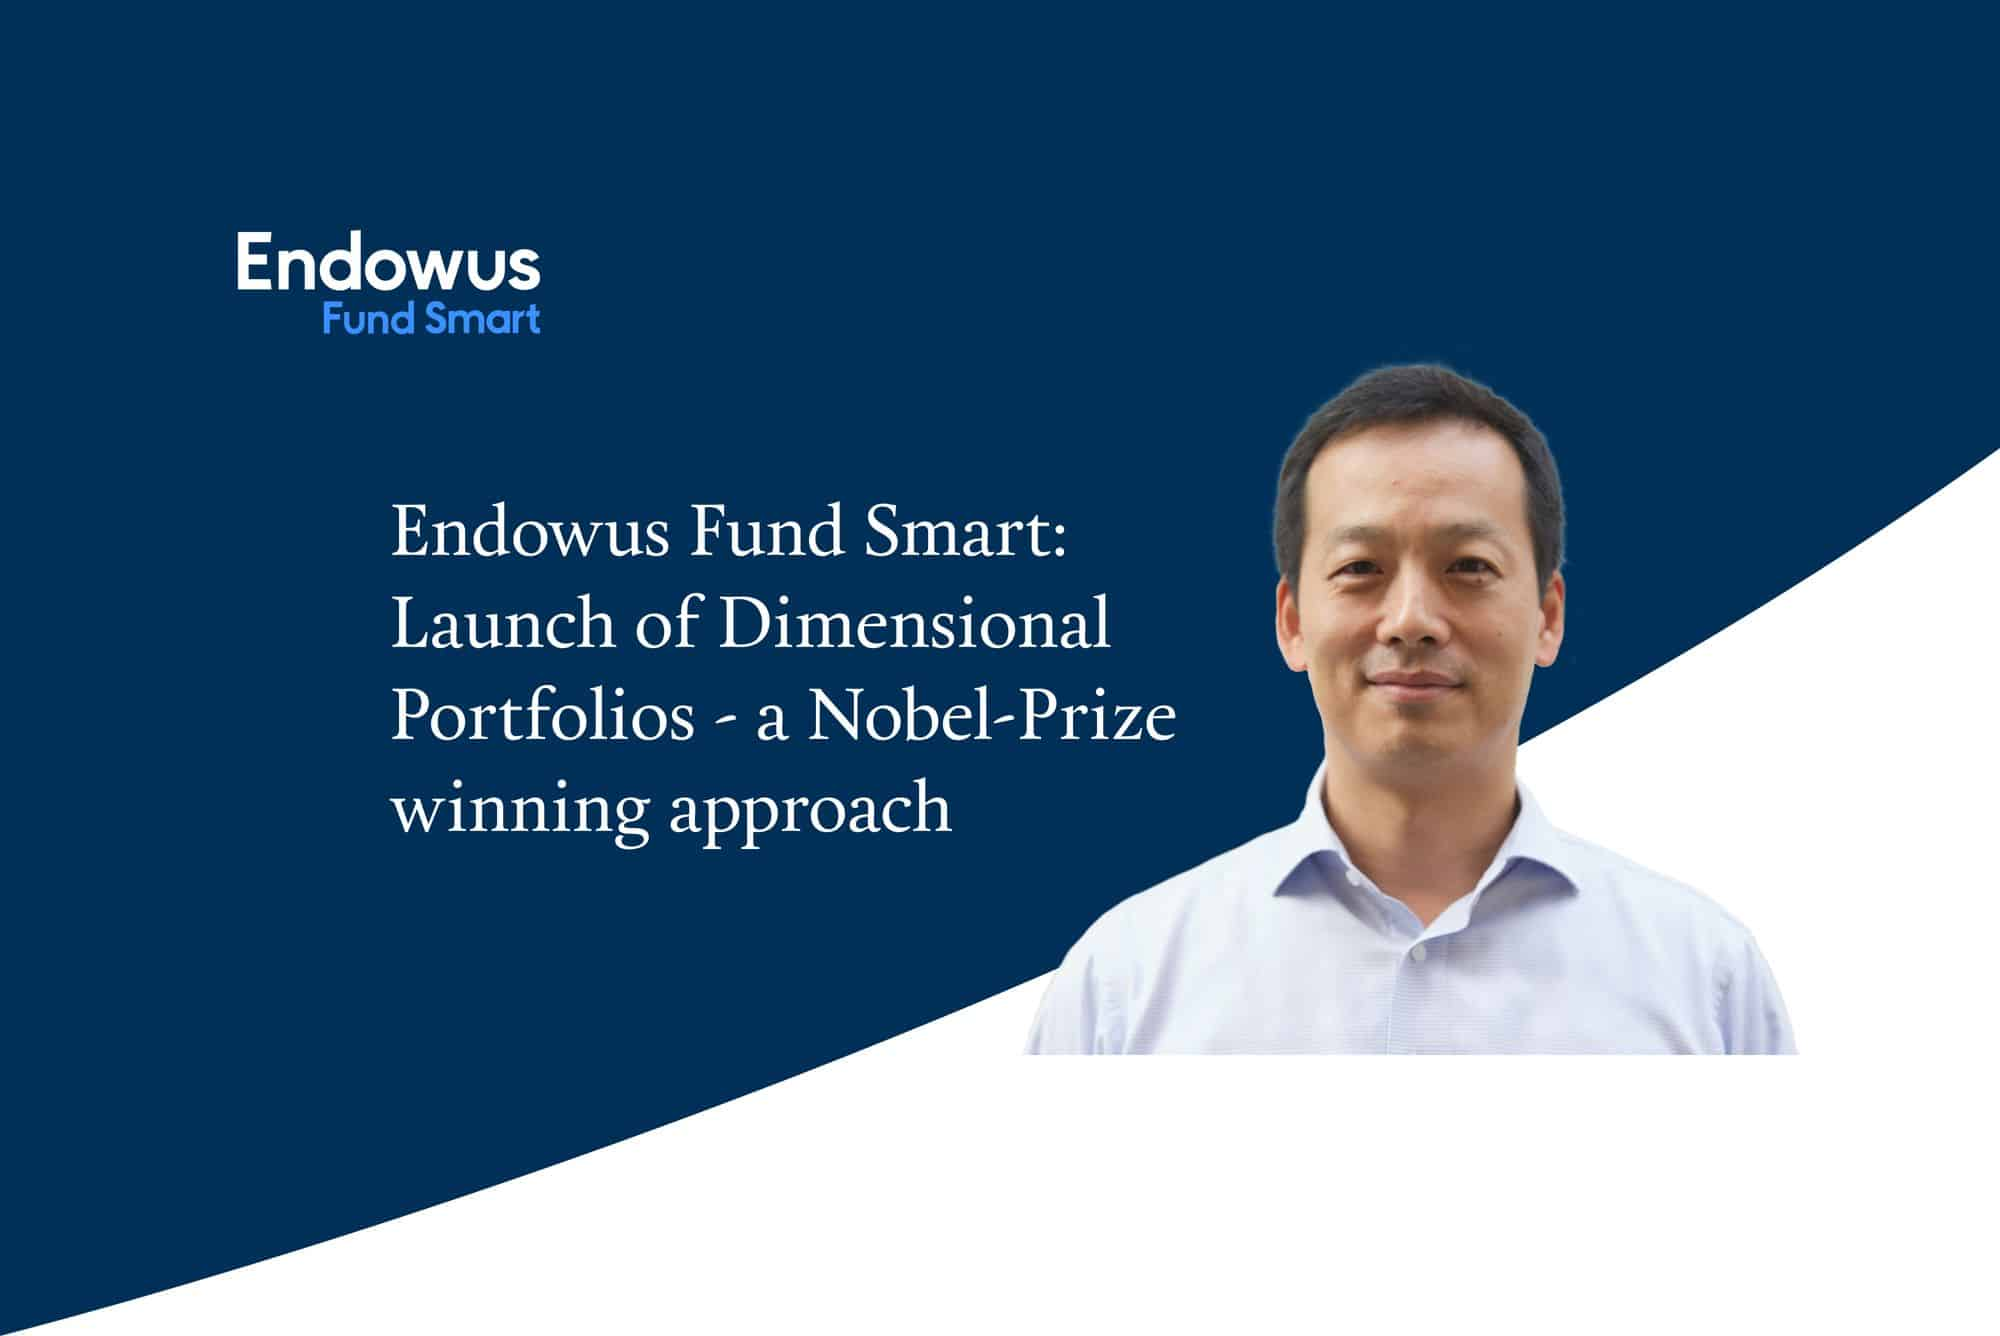 Endowus Fund Smart: Launch of Dimensional Portfolios – a Nobel-Prize winning approach